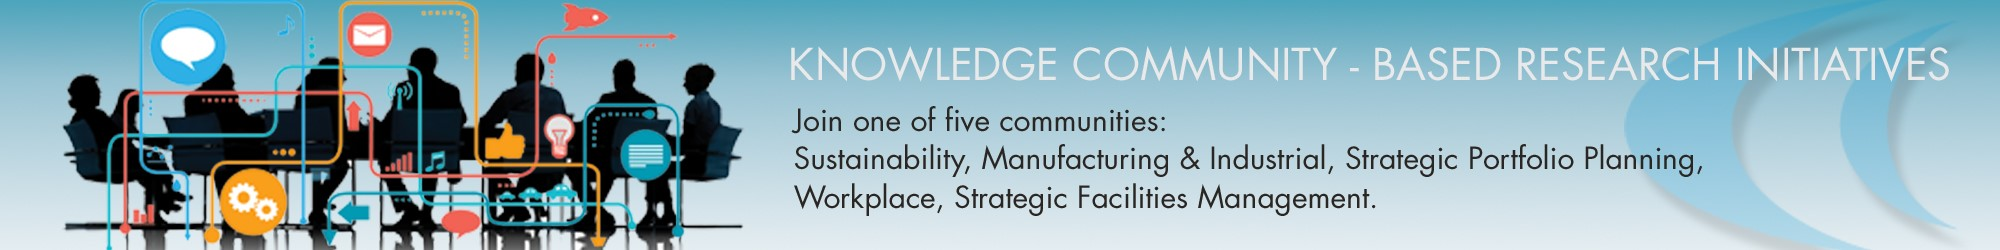 knowledge_center_banner_2015